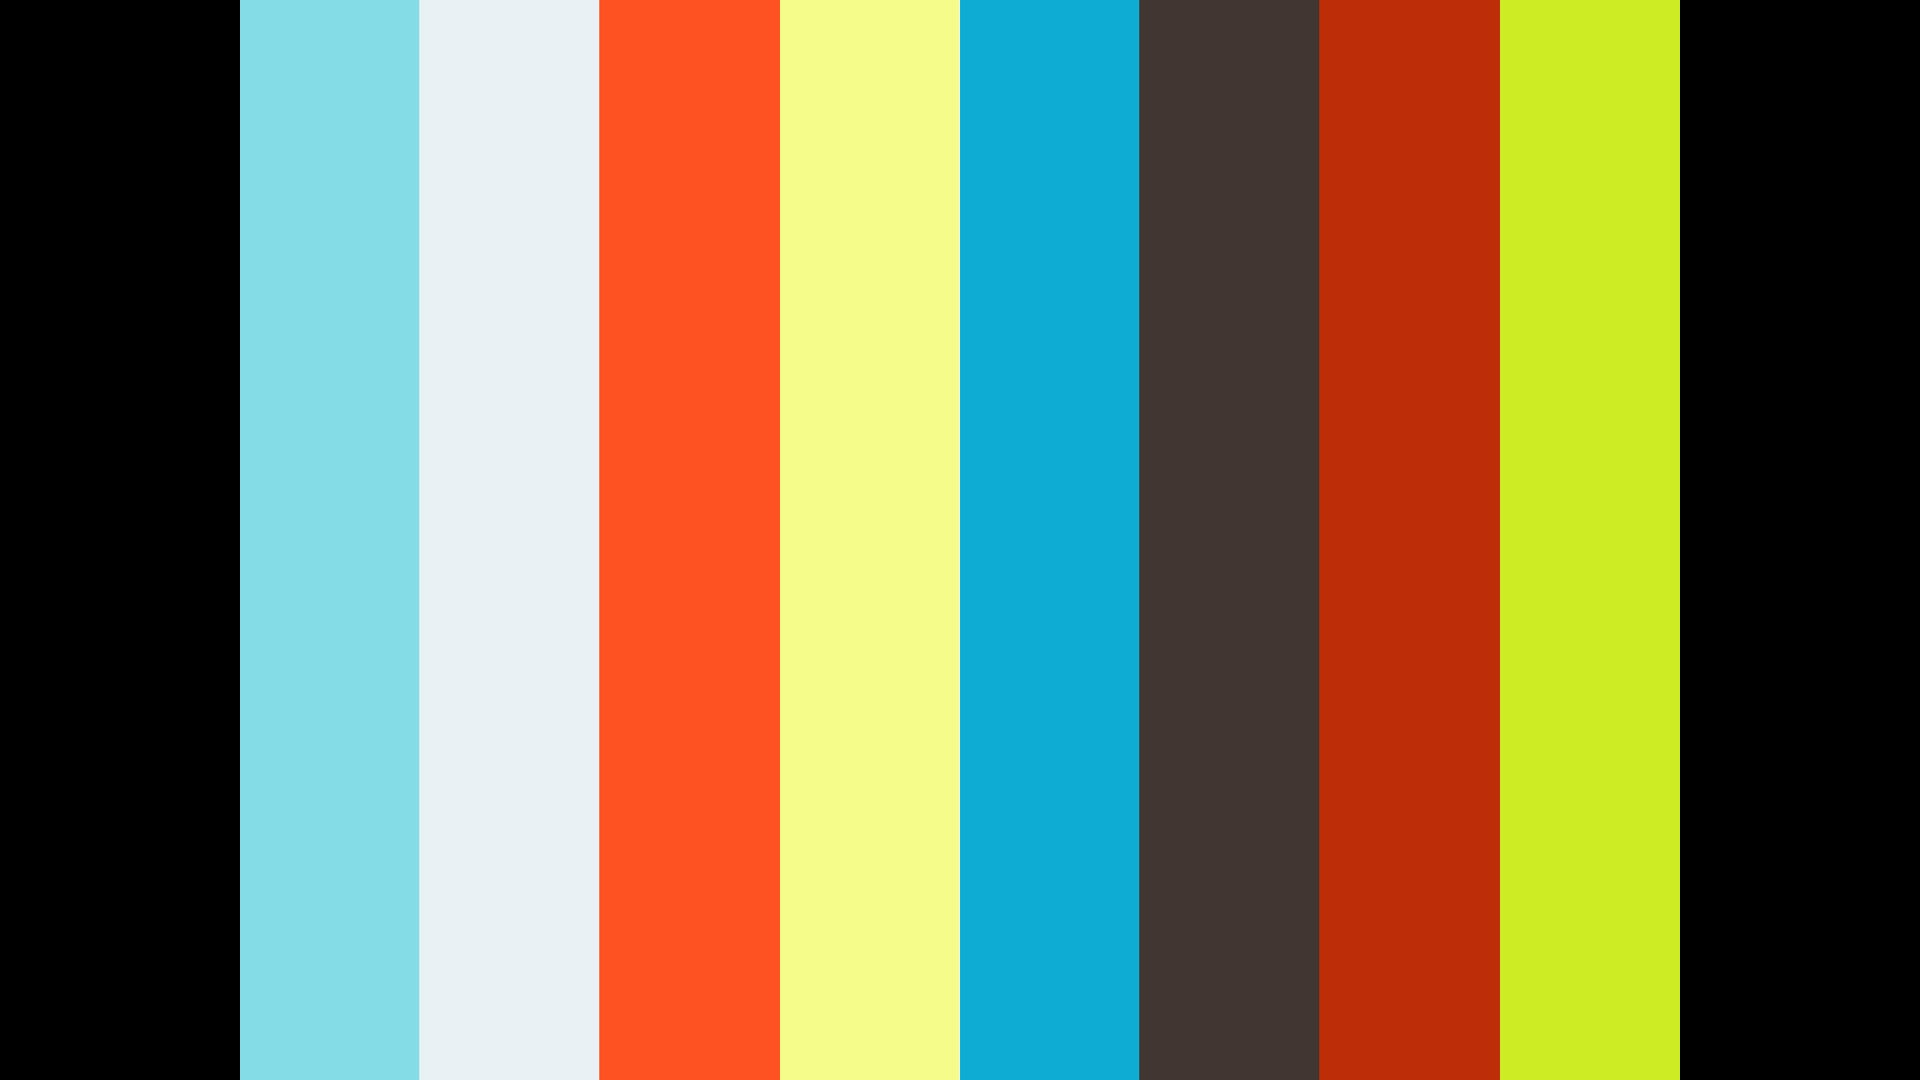 Meet The Bone Doctor: Dr. Kjeldgaard